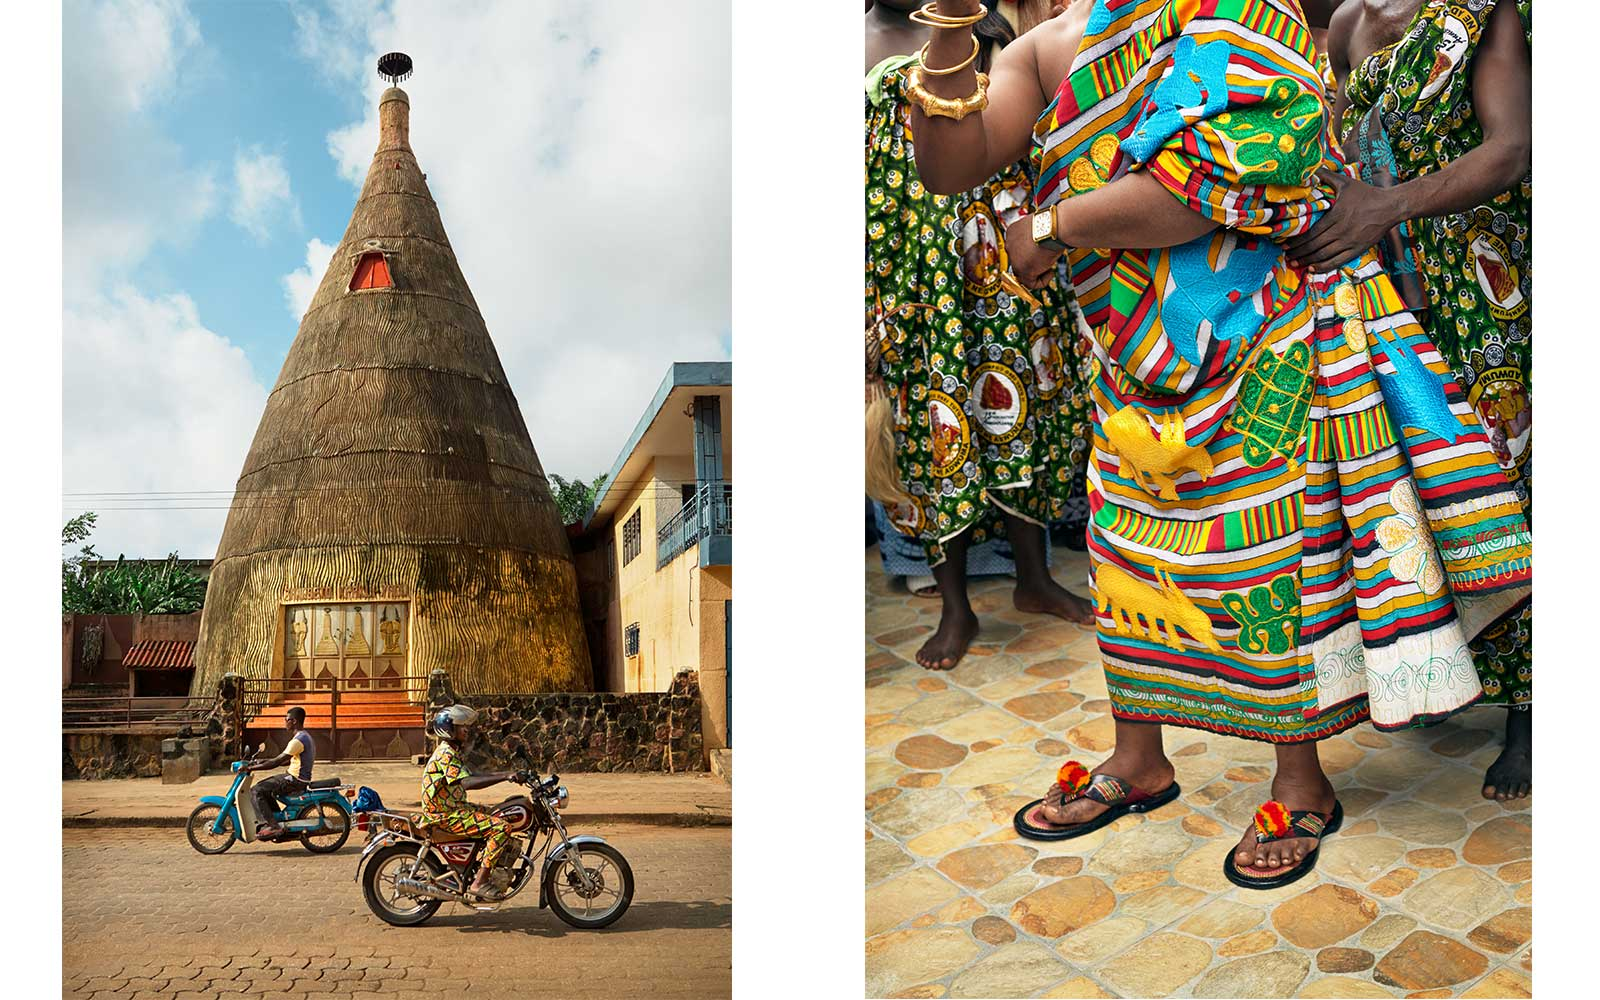 Left: Zangbeto Temple, Benin 2014. Right: The King's Warrior Dance, Ghana 2014.